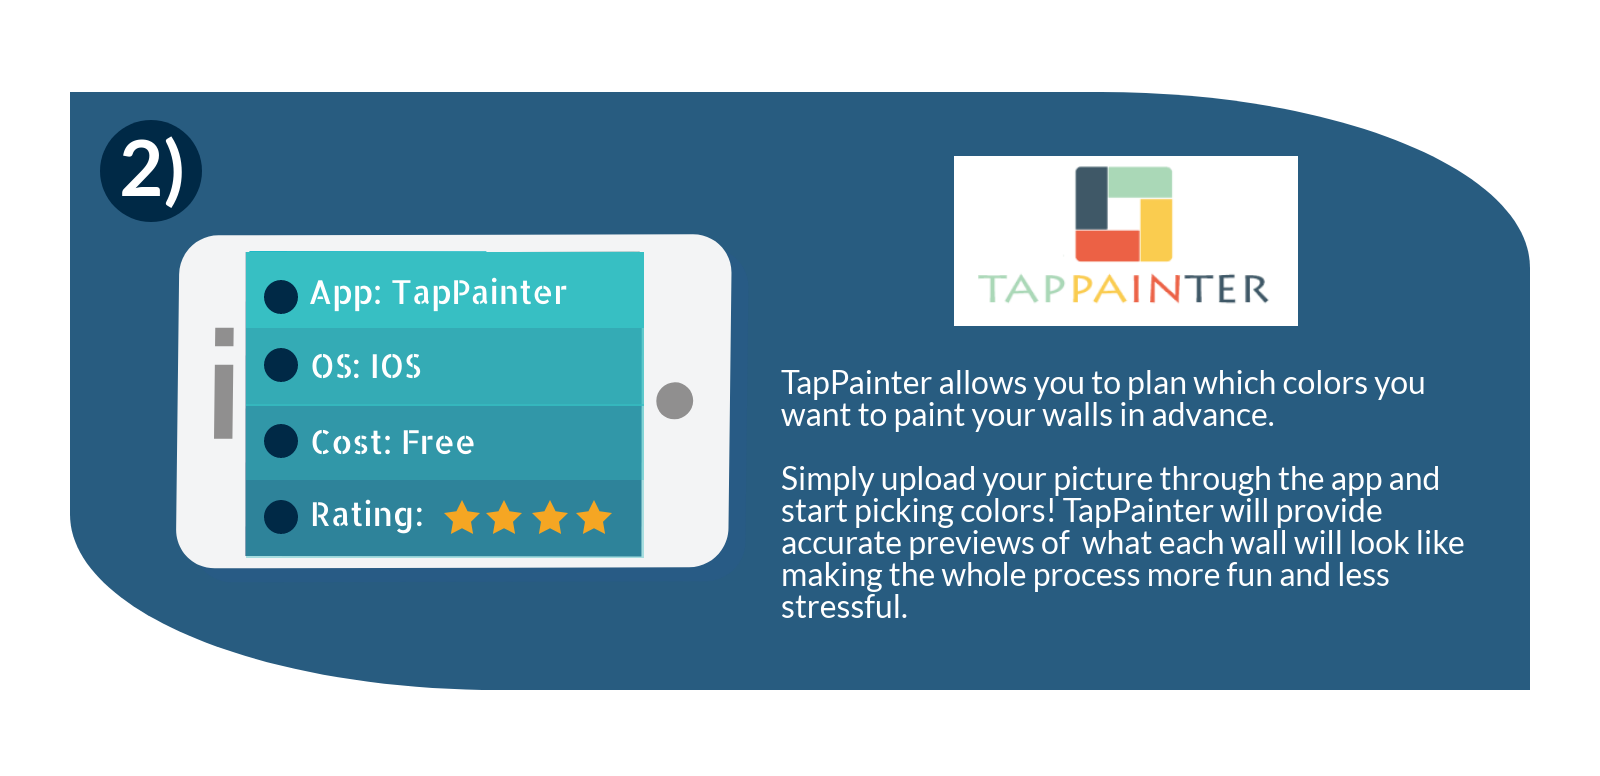 select what colors to paint your walls with the tappainter mobile app